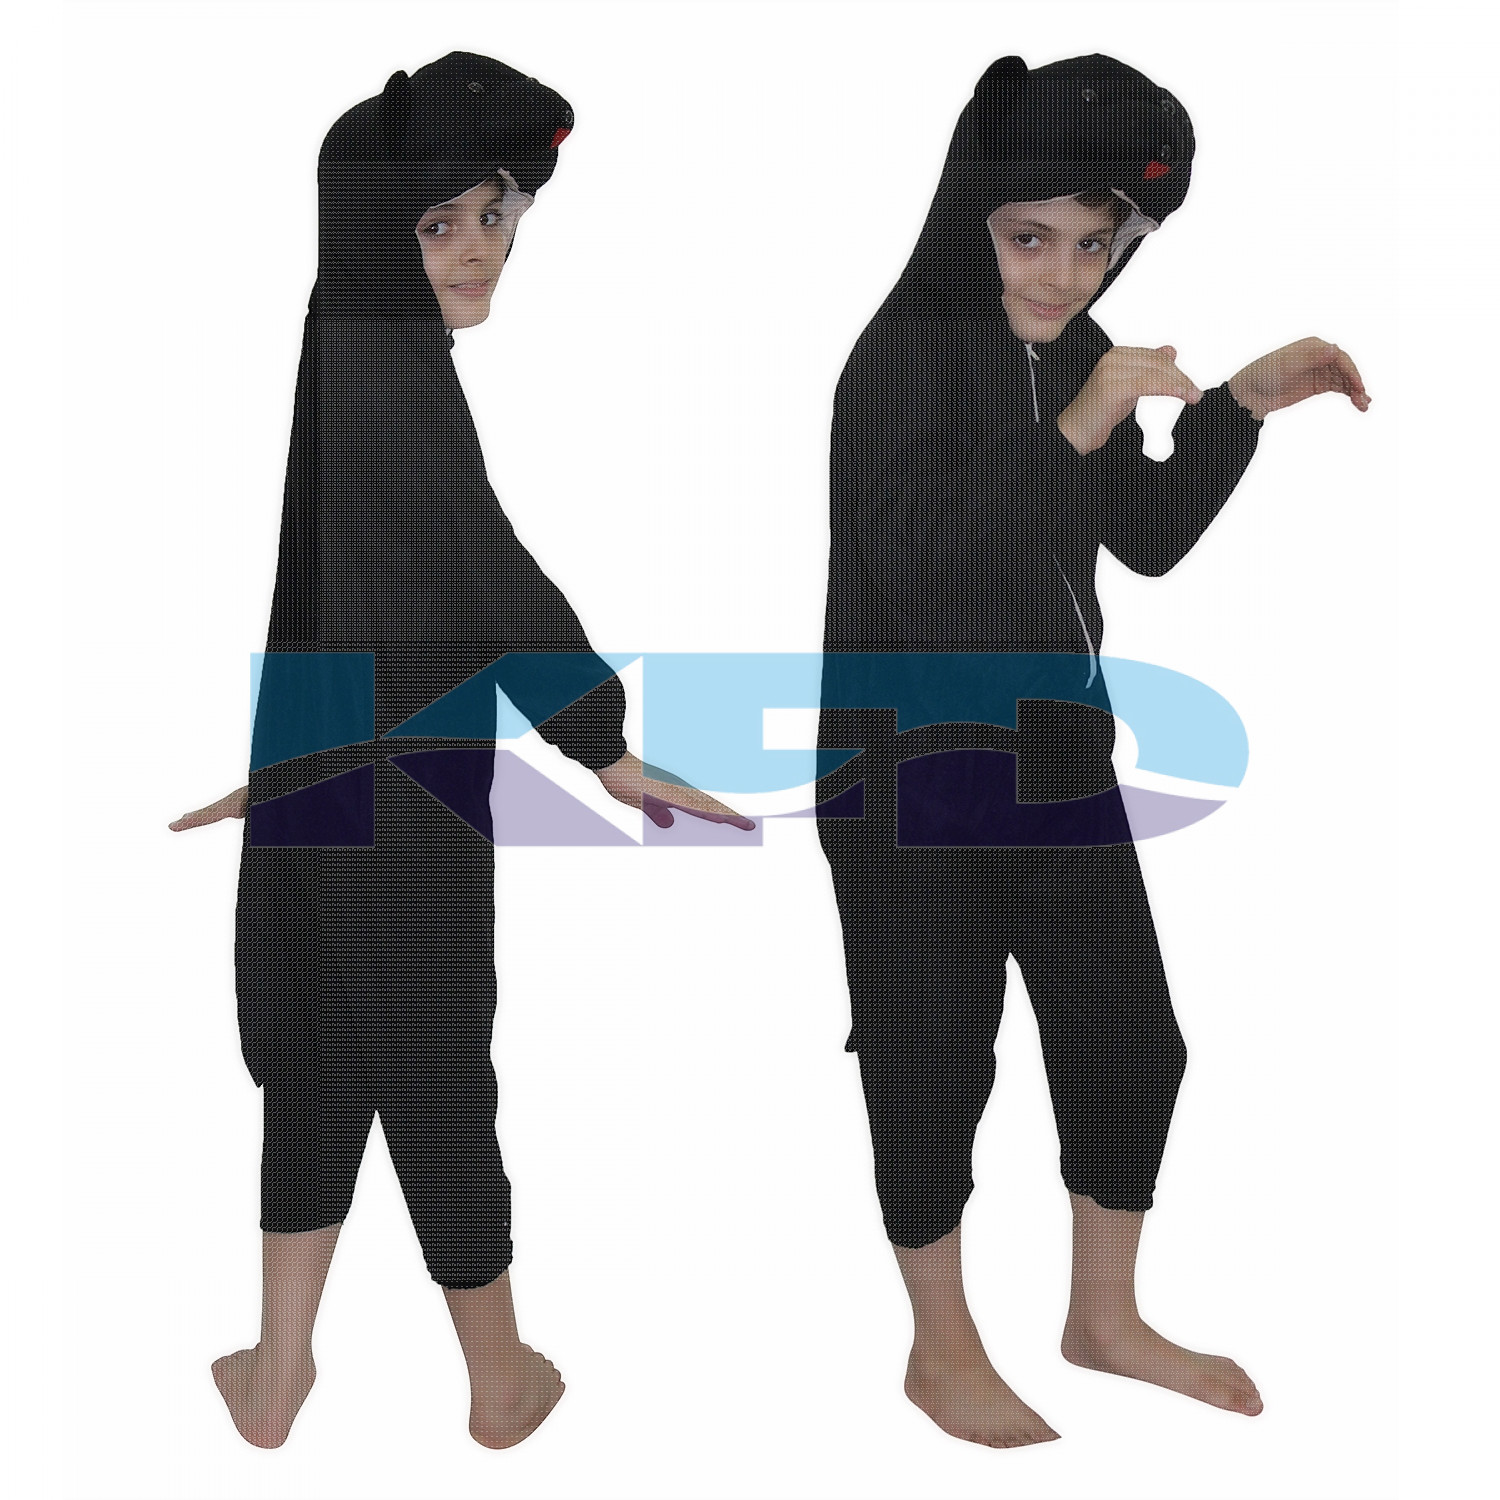 Bear fancy dress for kids,Wild Animal Costume for School Annual function/Theme Party/Competition/Stage Shows Dress